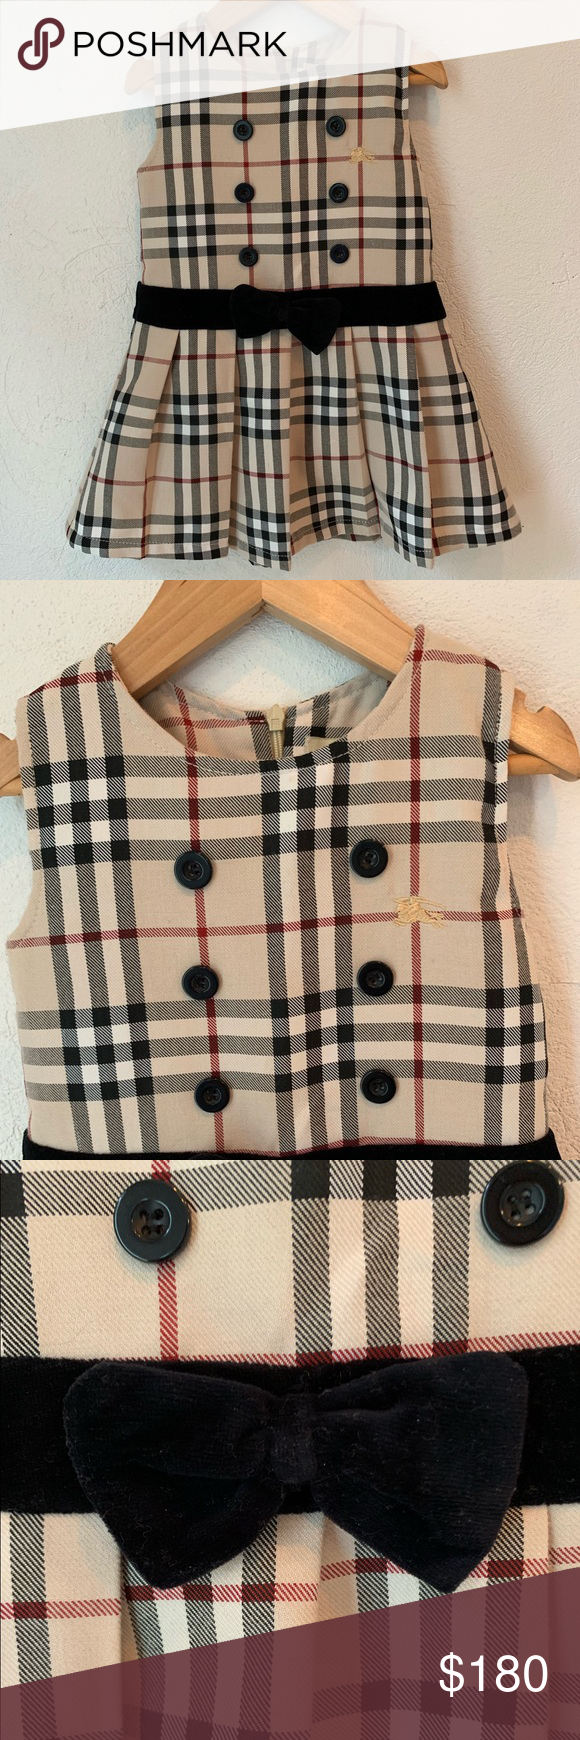 Burberry London toddler dress size M Spotted while shopping on Poshmark: Burberry London toddler dress size M!